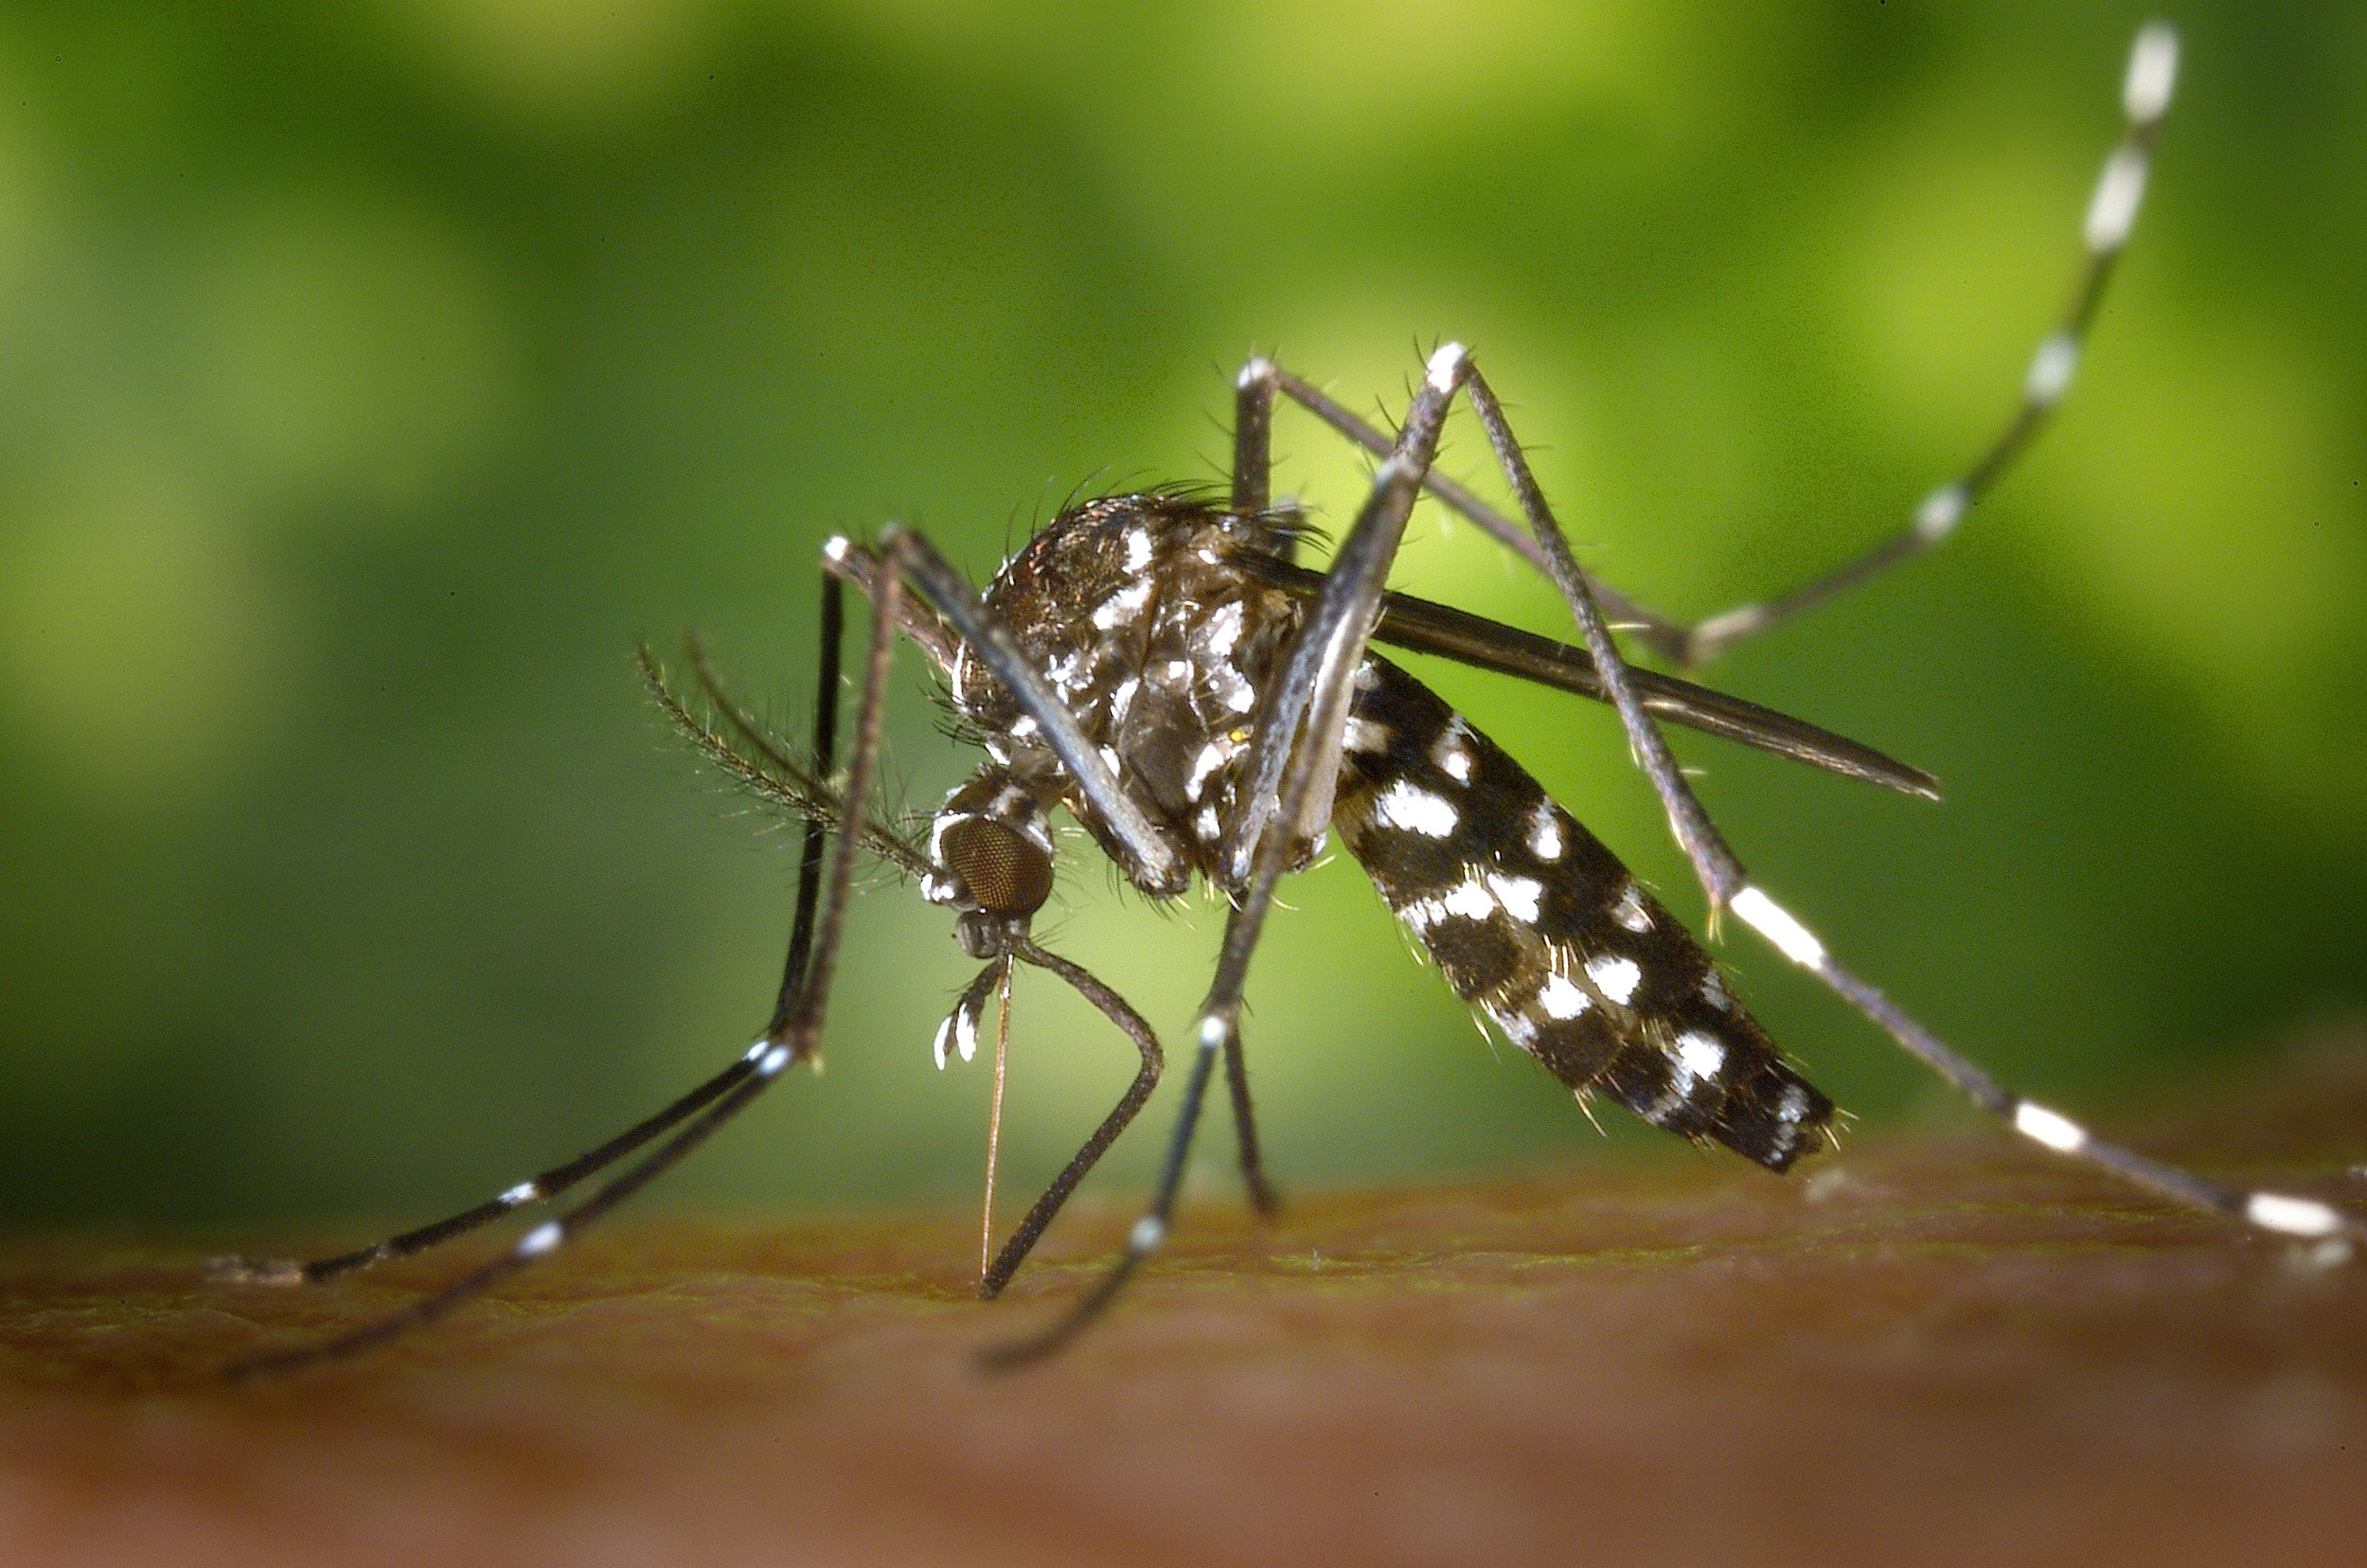 110 tiger-mosquito-mosquito-asian-tigermucke-sting-86722.jpeg